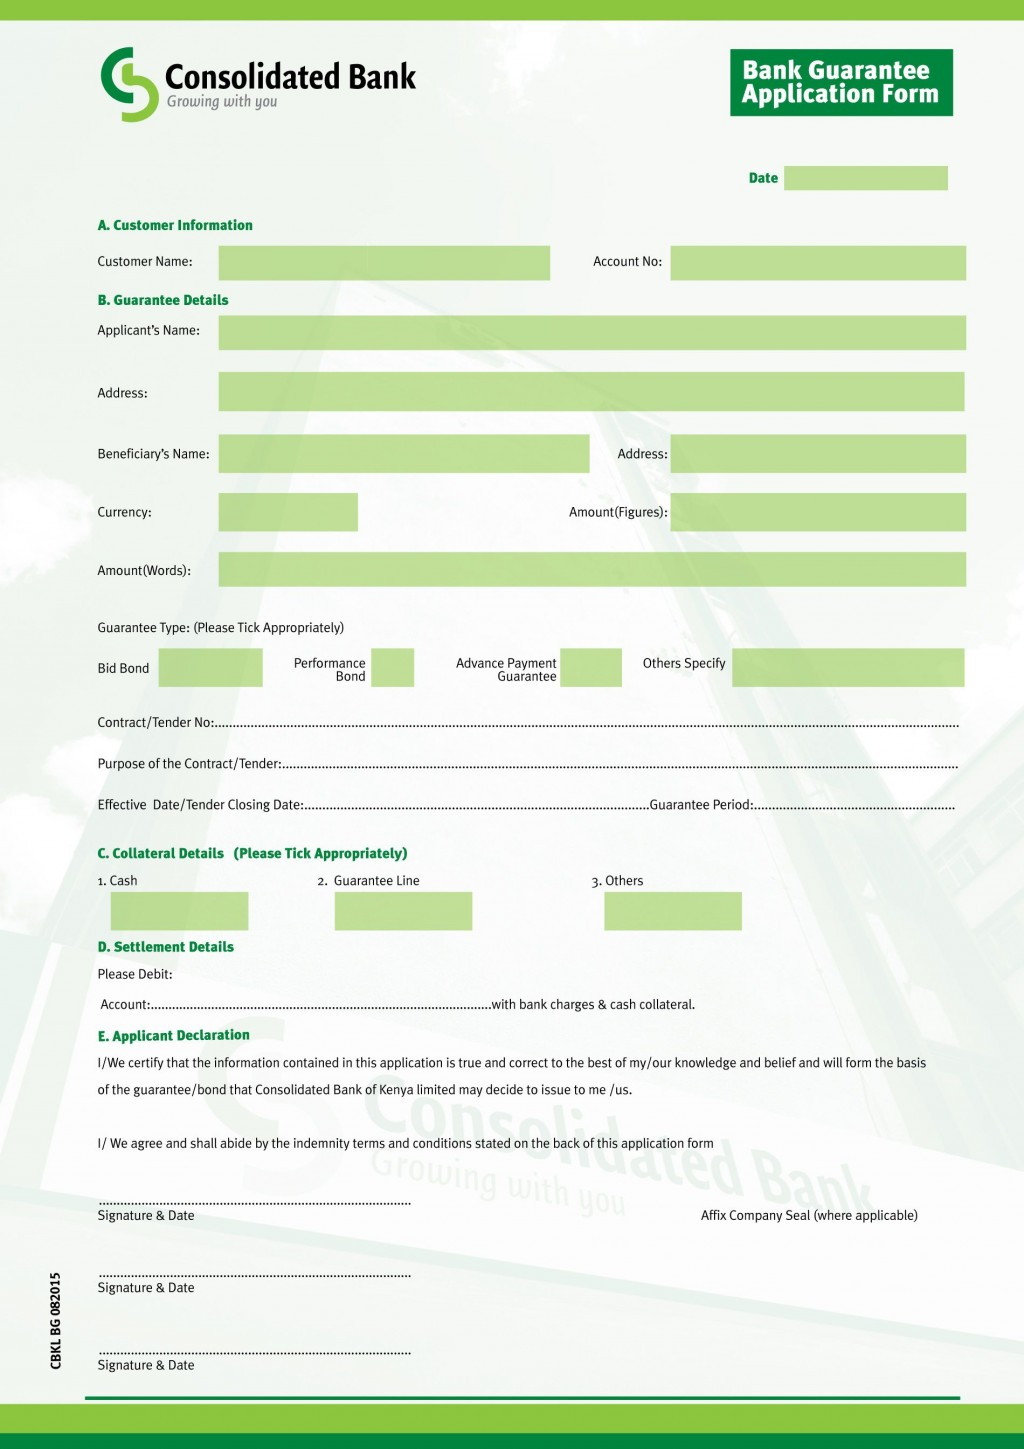 001 Magnificent New Customer Account Opening Form Template High Resolution  Word Uk ExcelLarge